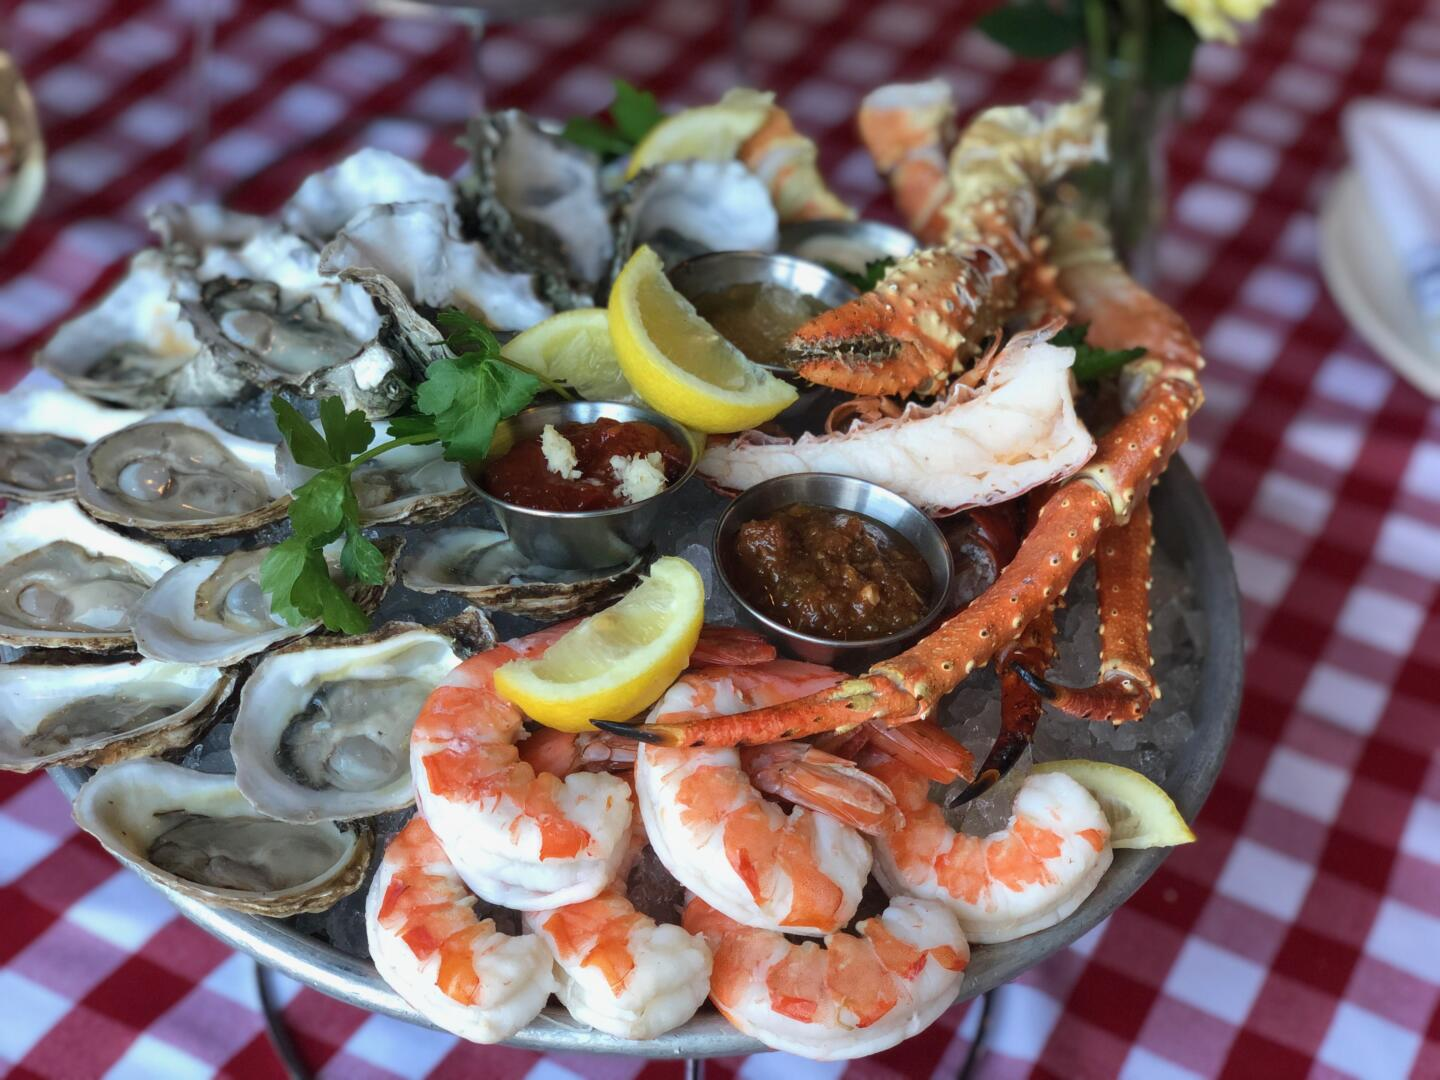 Quality Crab and Oyster Bah Platter